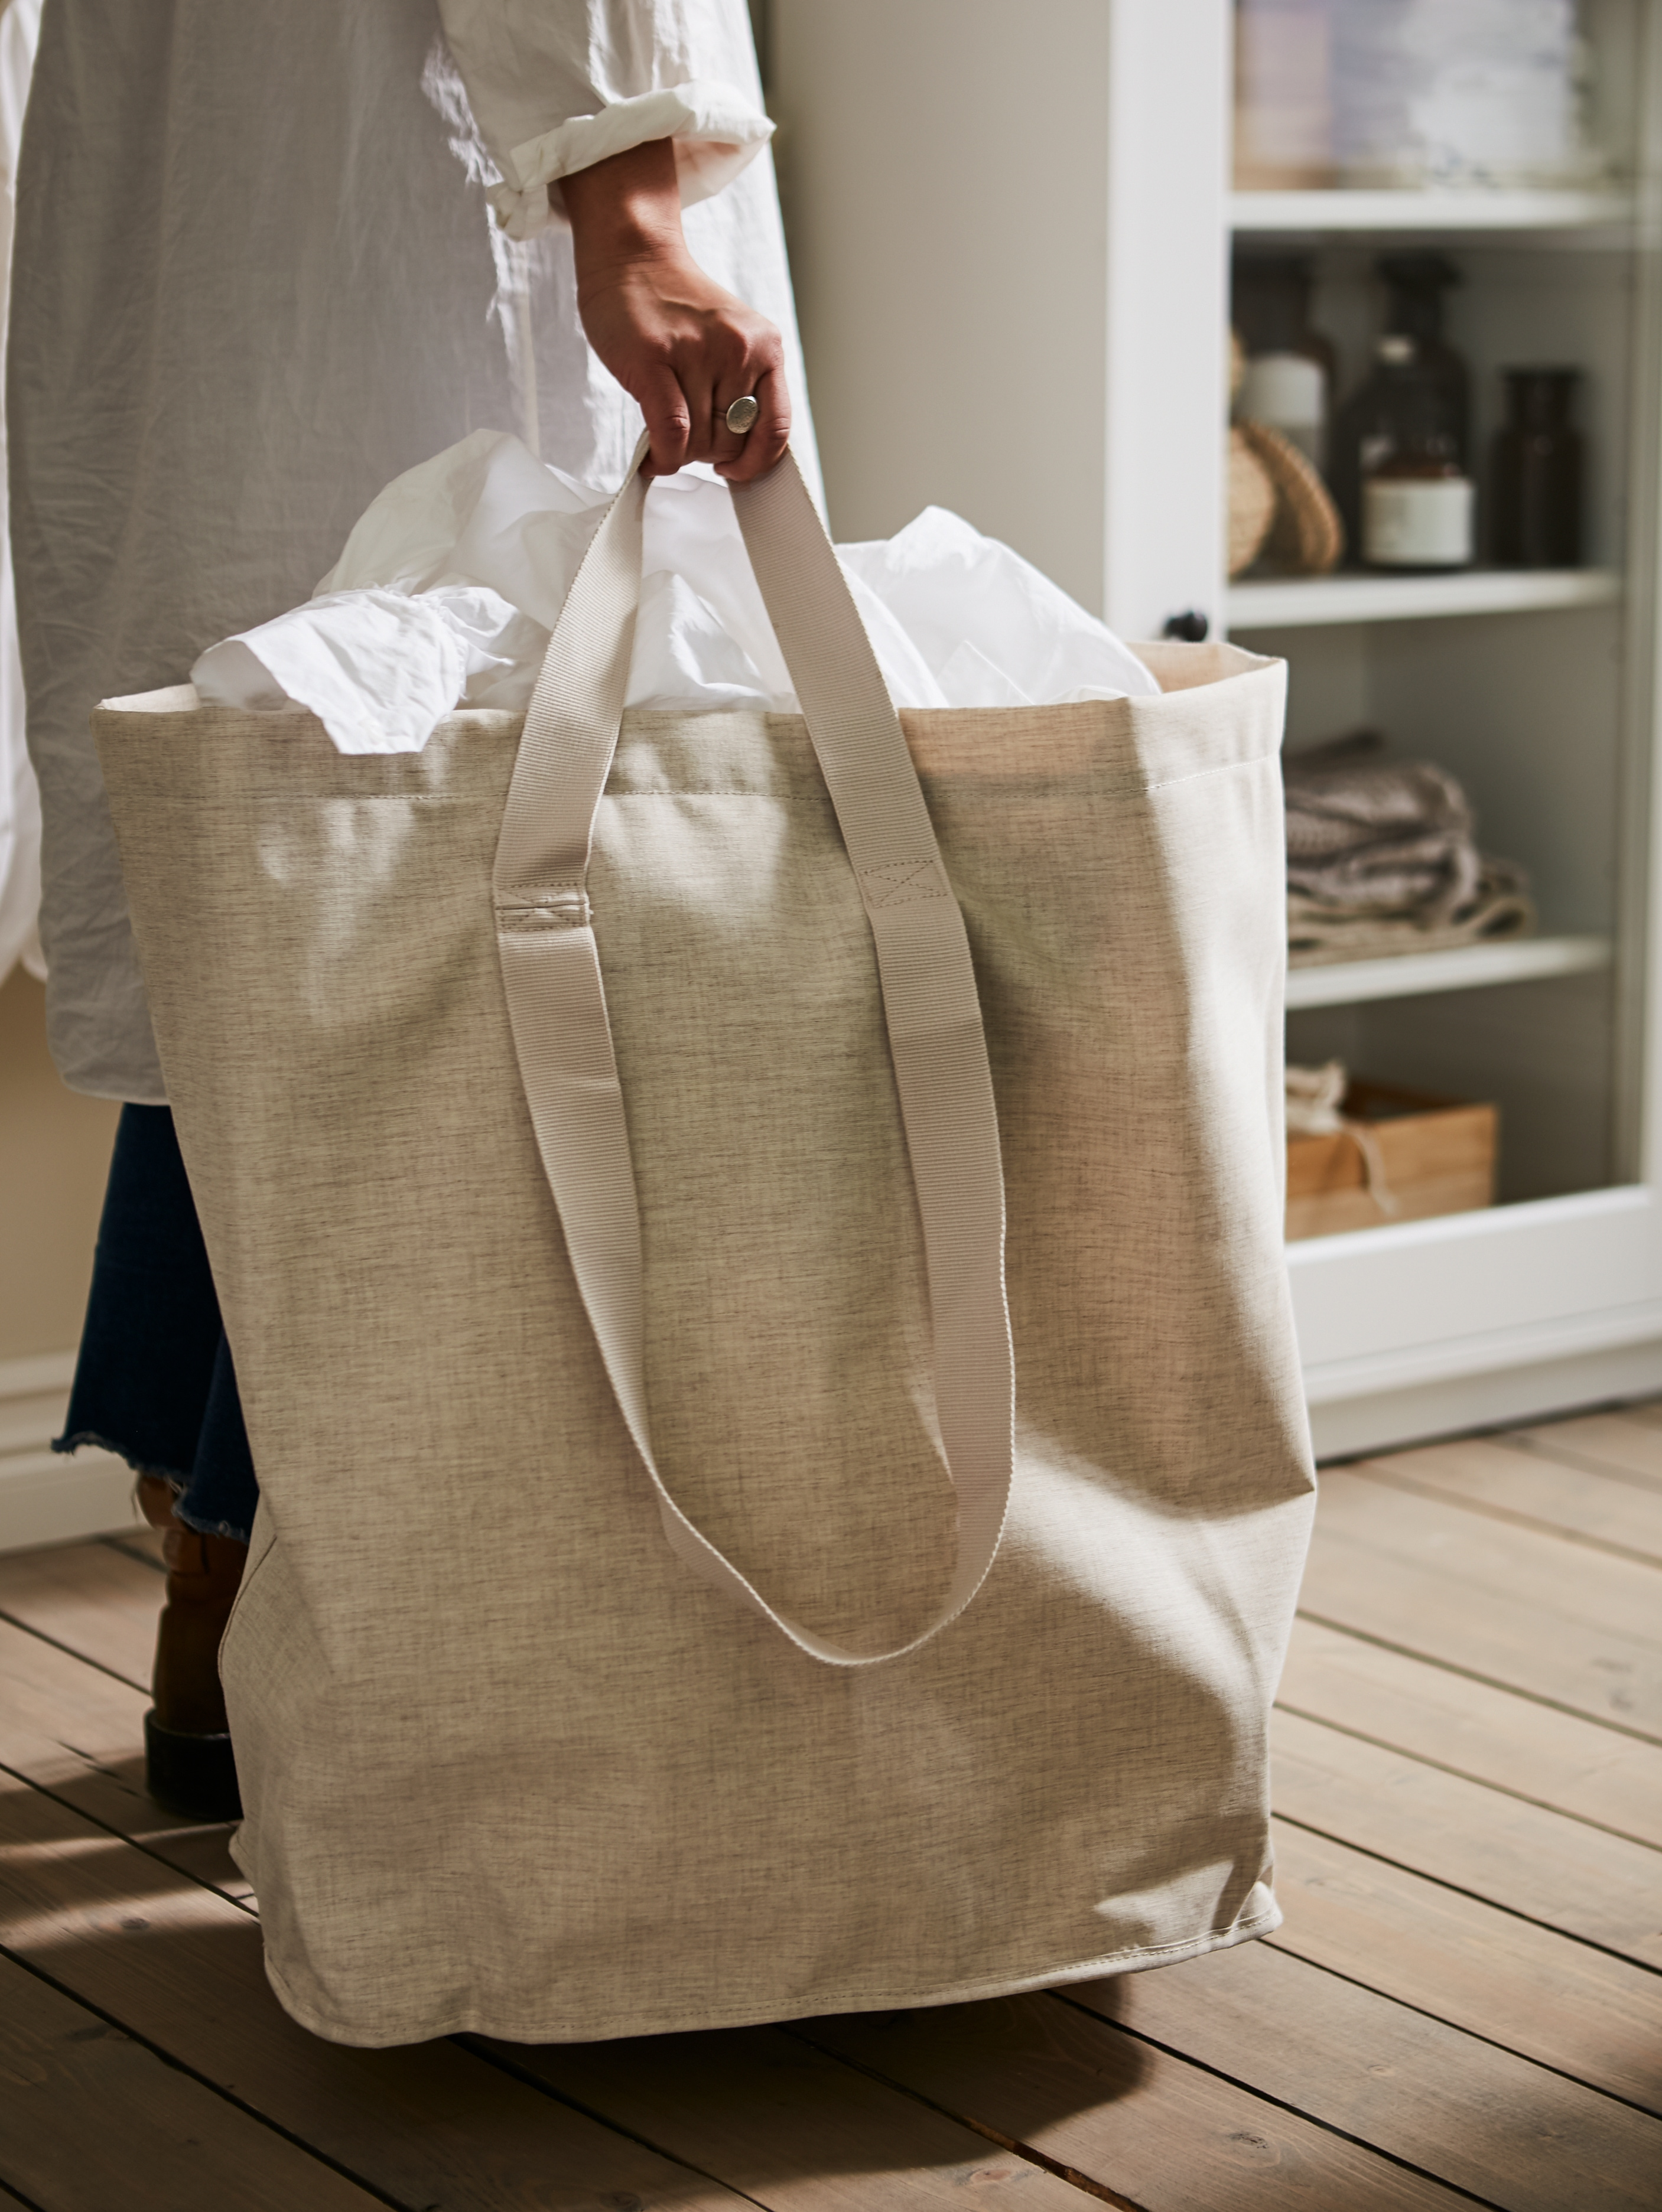 A woman walking across a wooden floor holding a beige PURRPINGLA laundry bag filled with white textiles.